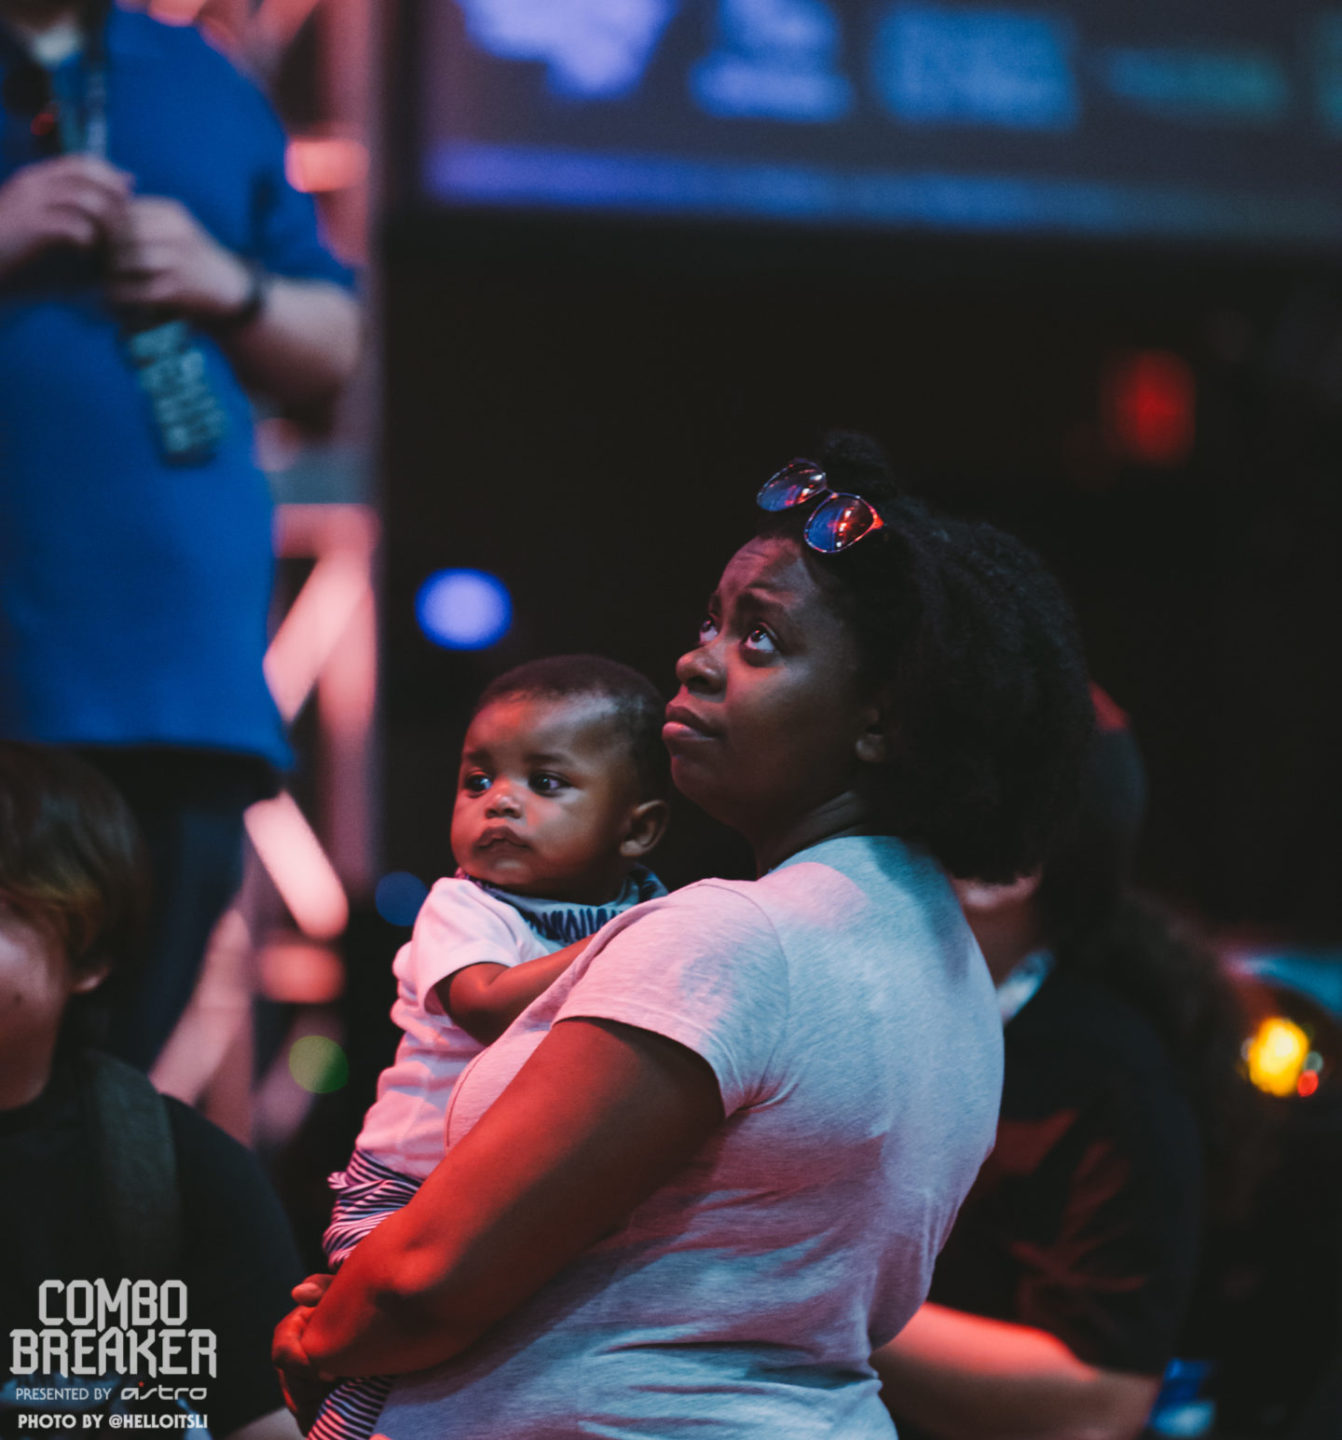 briana thompson holding her son, michael, at combo breaker